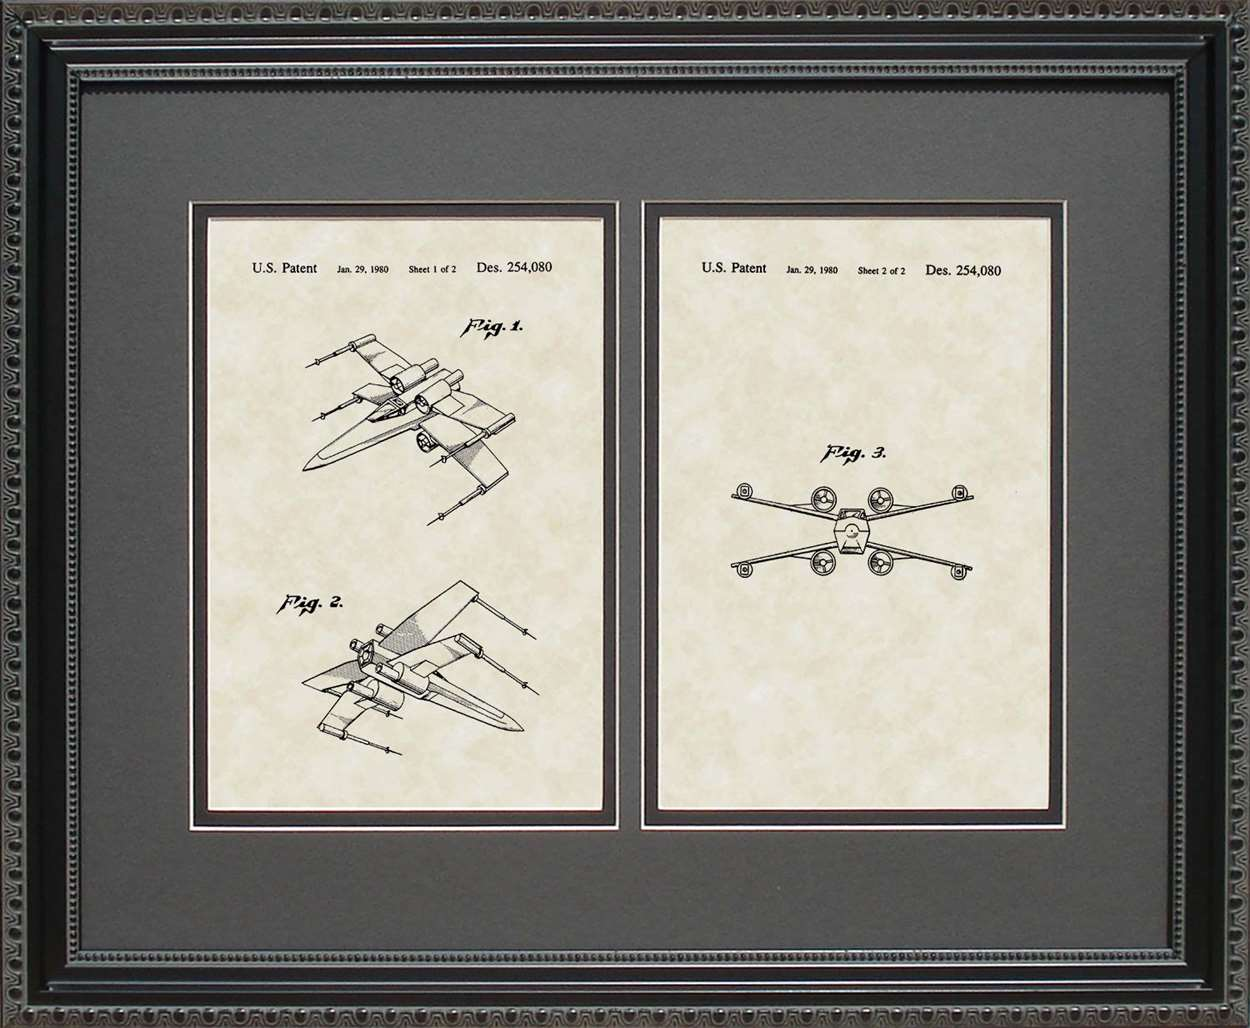 X-wing Fighter Patent, Art & Copy, Johnston, 1980, 16x20